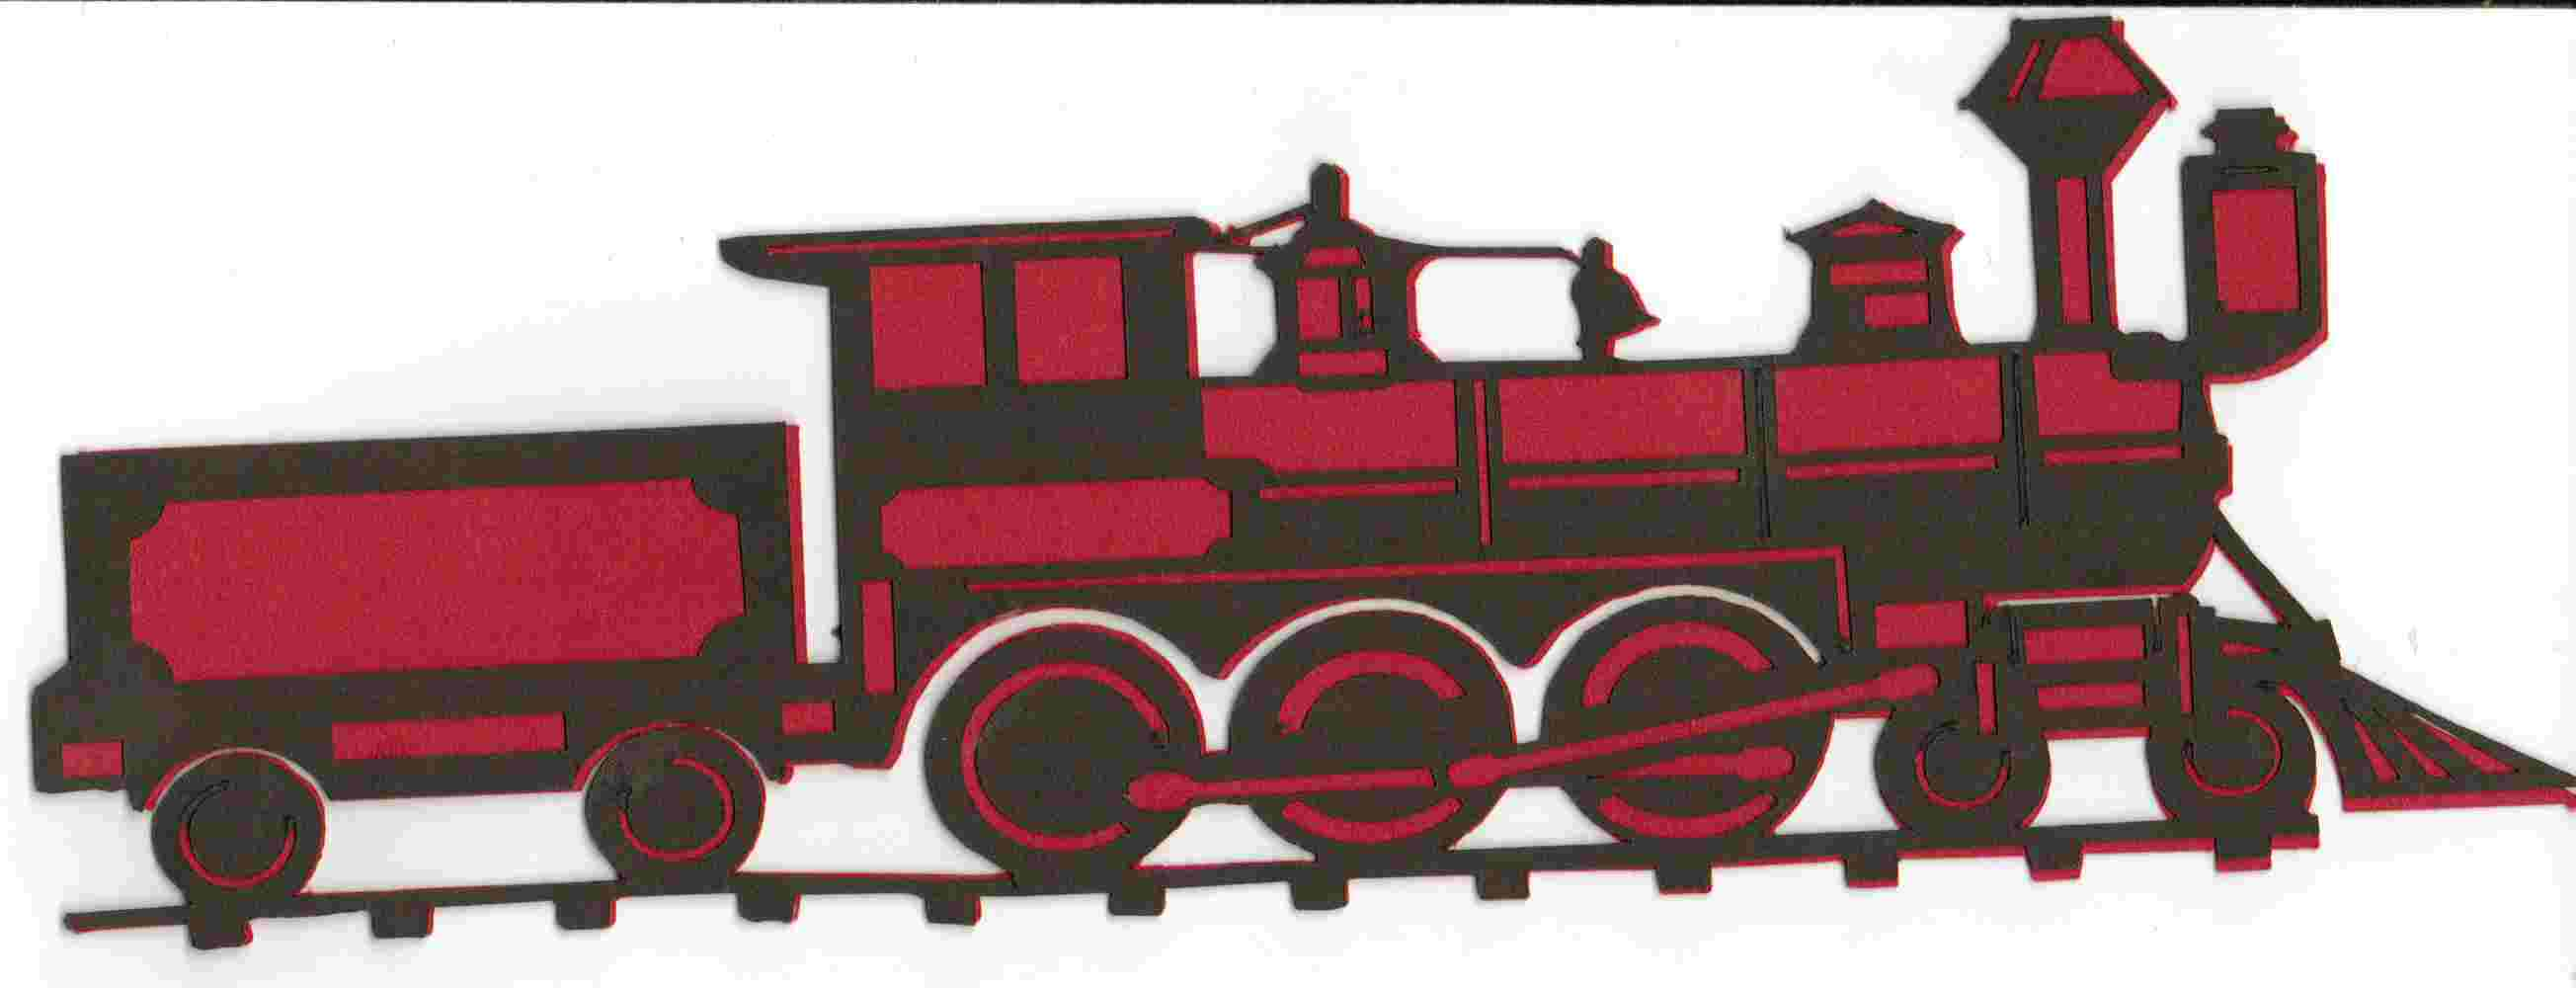 Train die-cut red